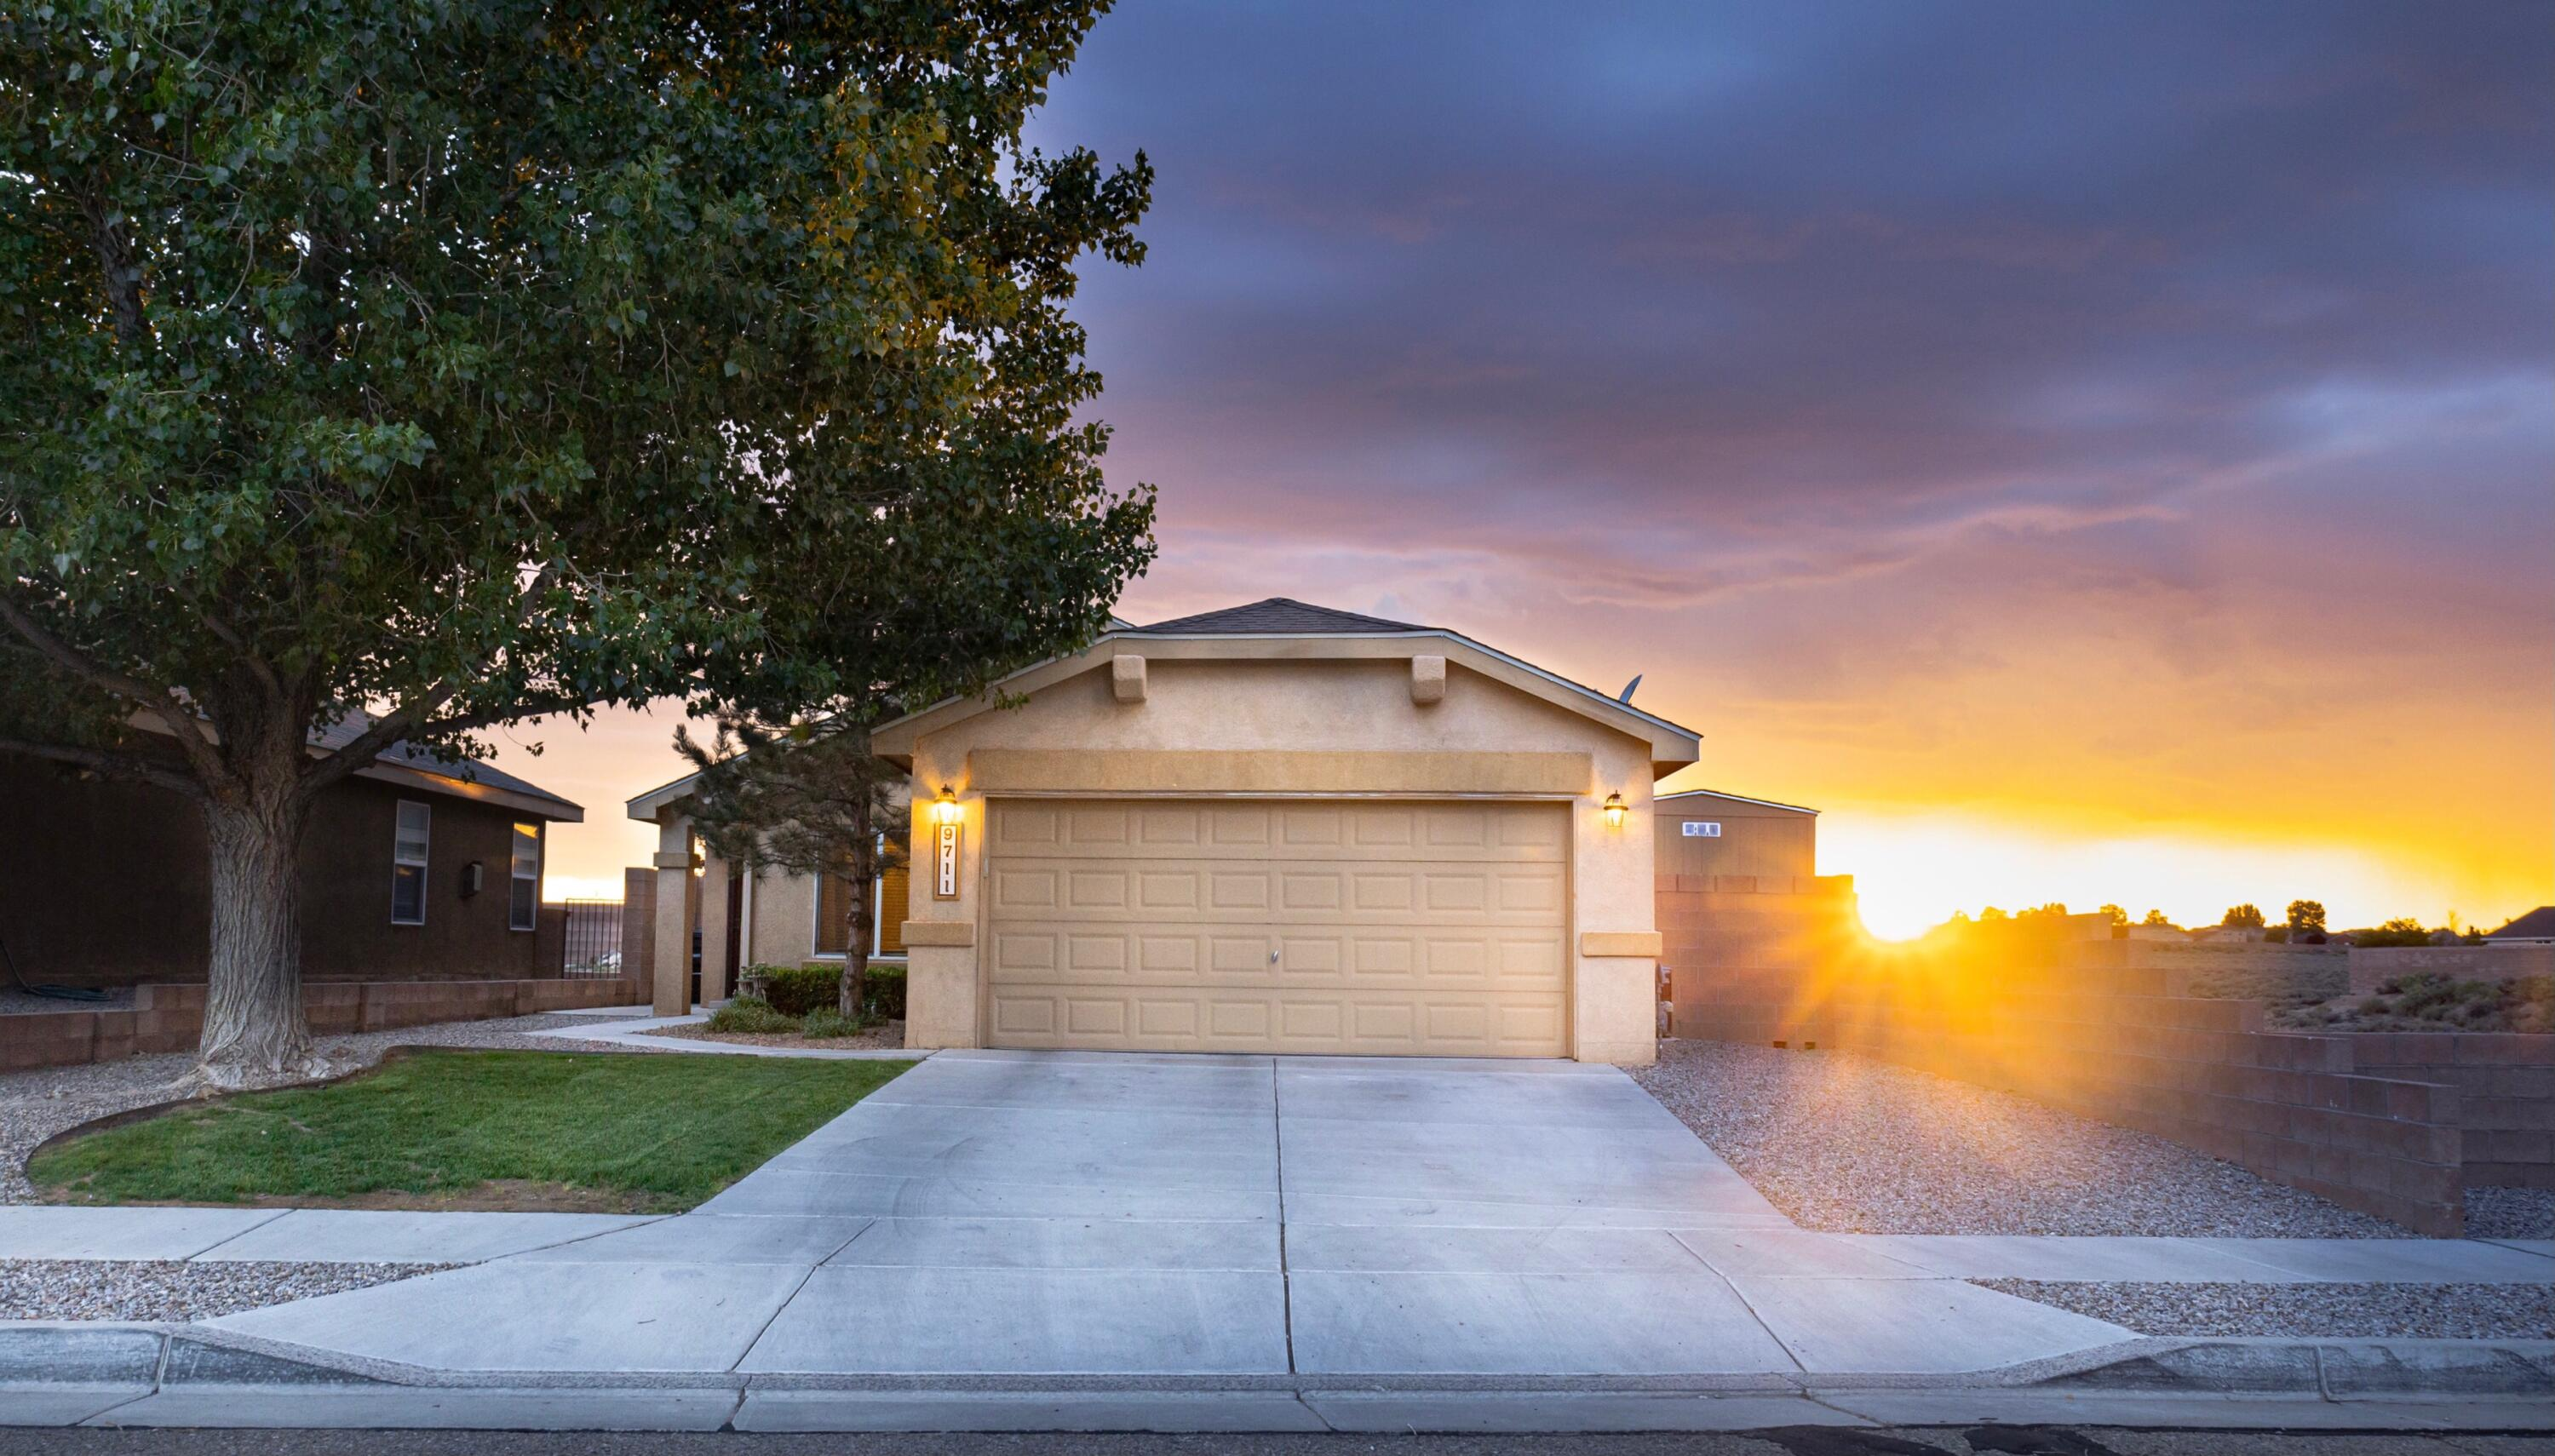 Welcome to this highly desired Ventana Ranch community. This home has an open floor plan and 4 bedrooms. All of the appliances are included.